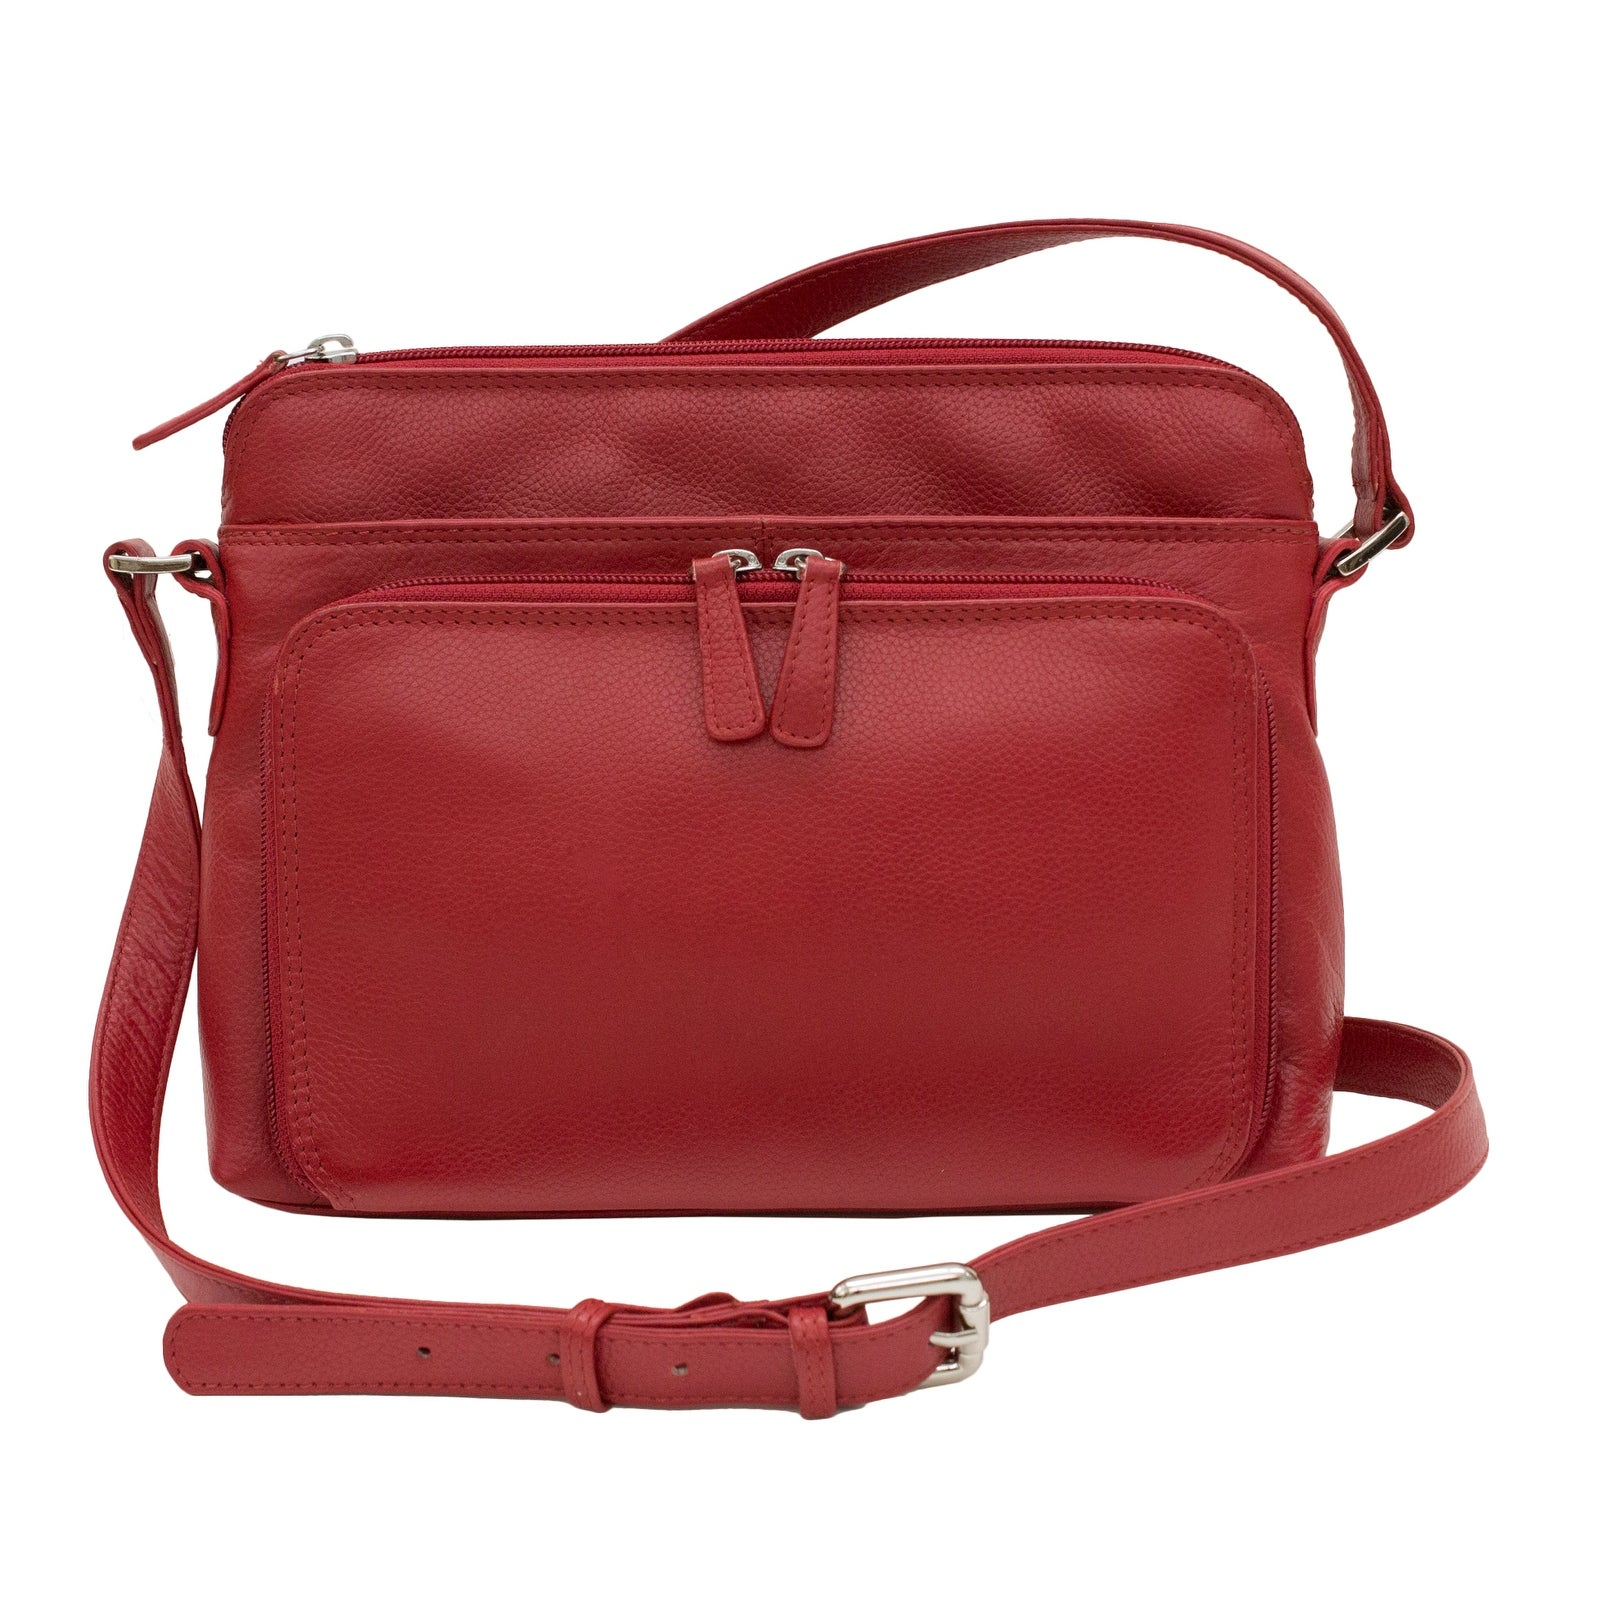 Ctm Women S Leather Shoulder Bag Purse With Side Organizer One Size Free Shipping Today 18506861